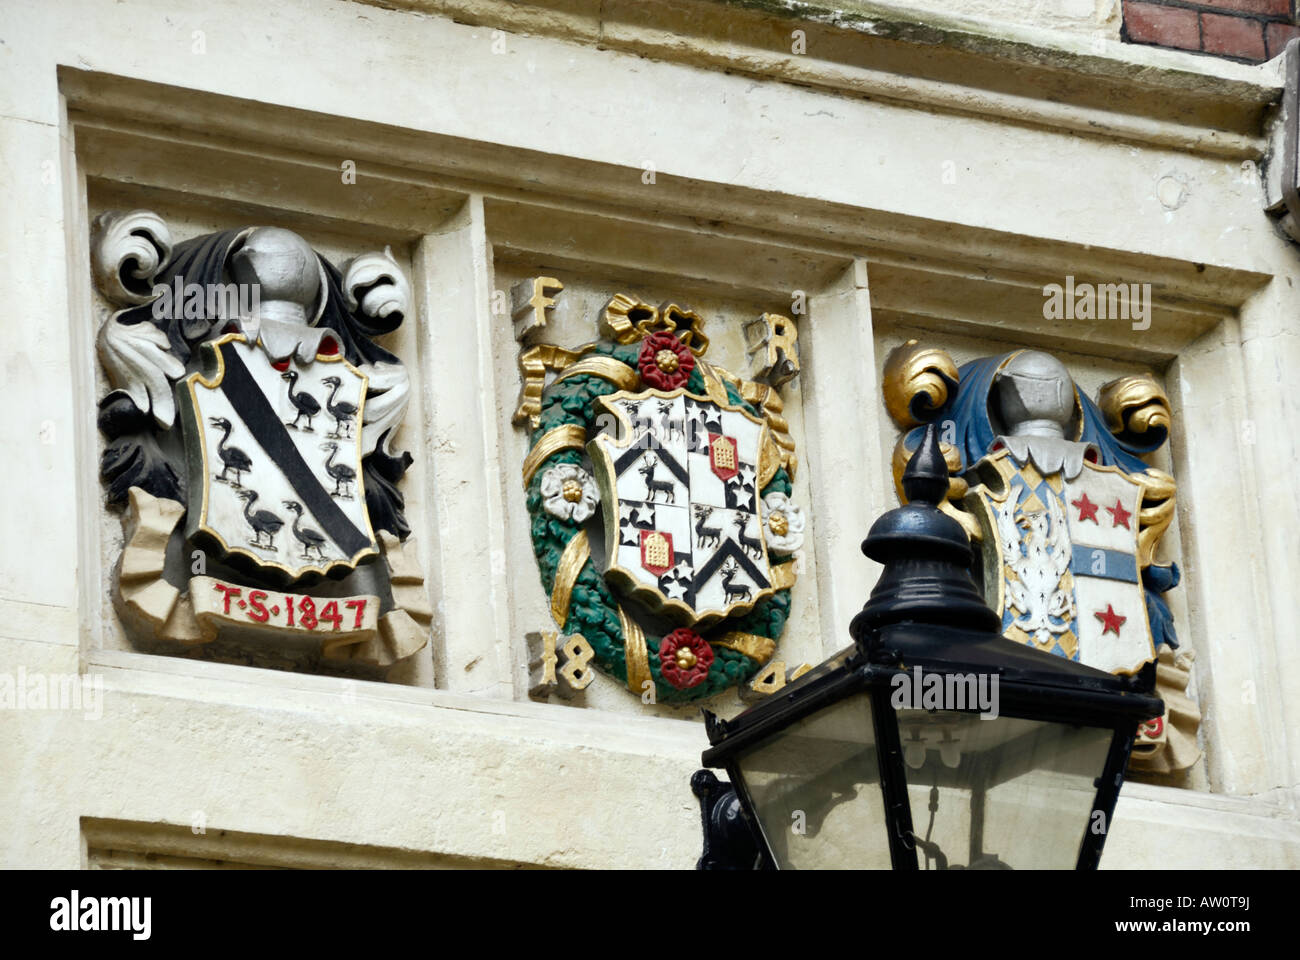 Coats of arms above entrance to Barristers' Chambers in the Temple, (the legal district), London - Stock Image